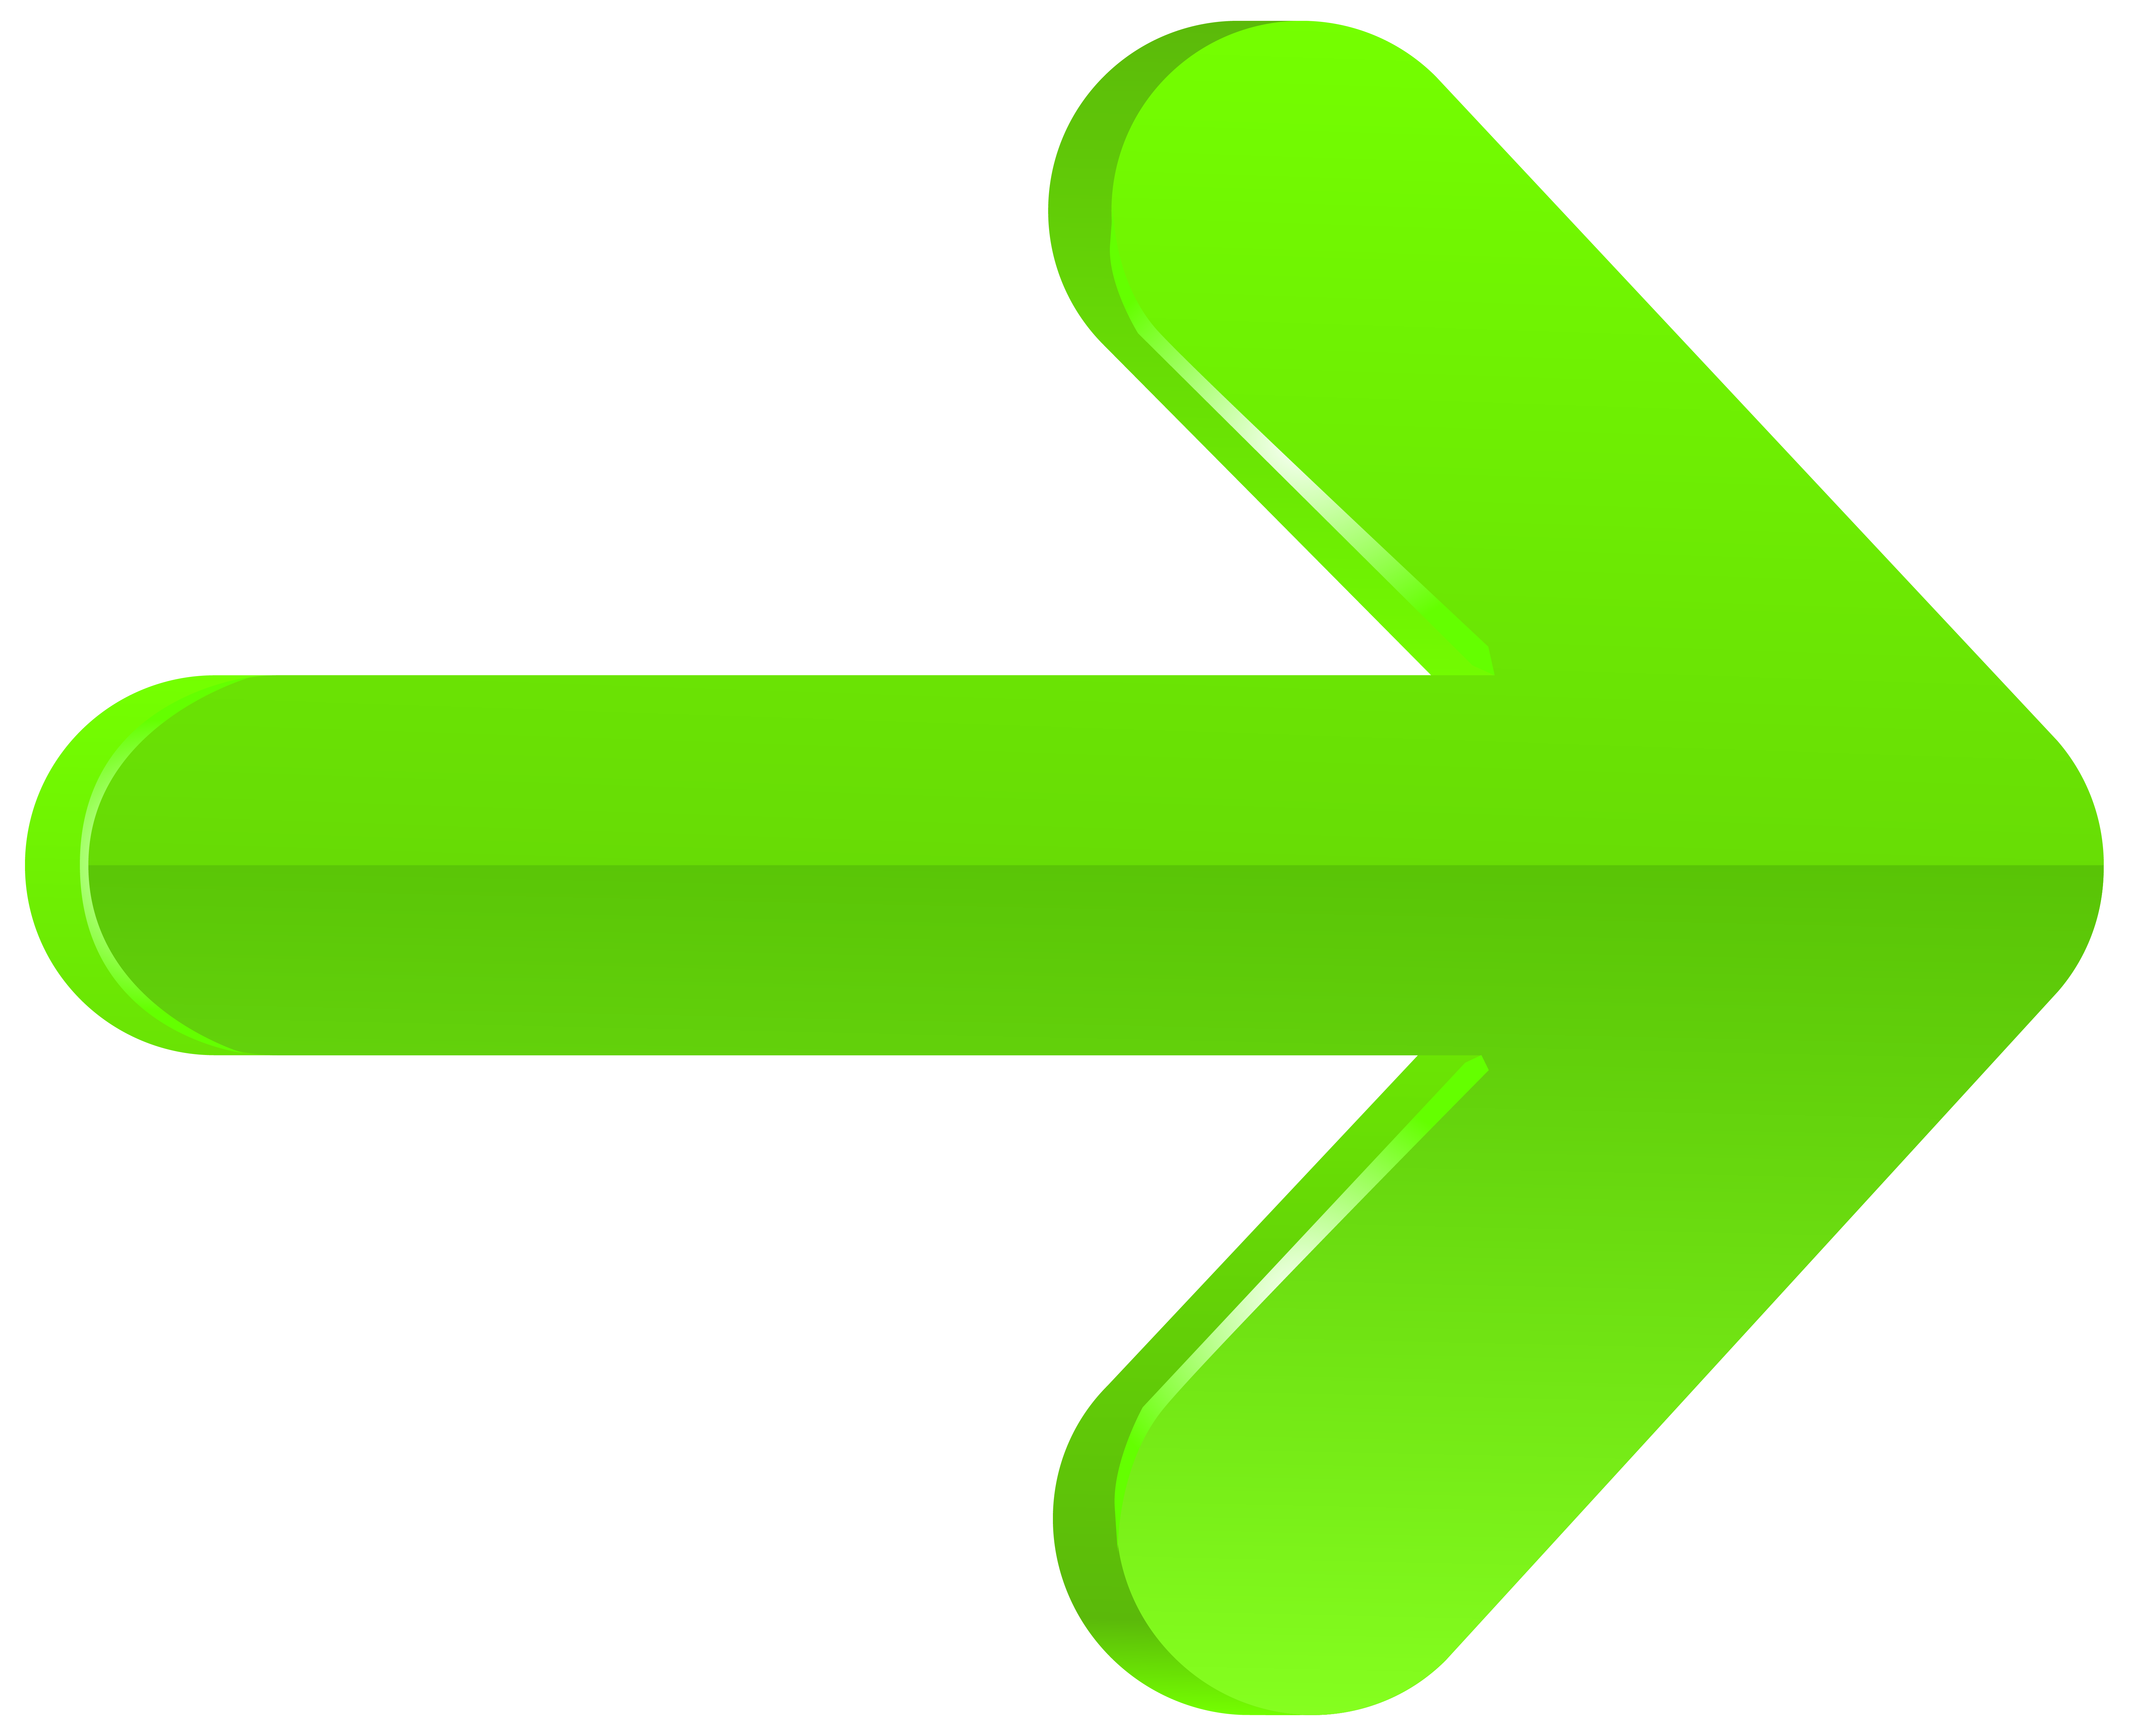 Clipart arrow png transparent clip black and white download Green Arrow Clipart at GetDrawings.com | Free for personal use Green ... clip black and white download